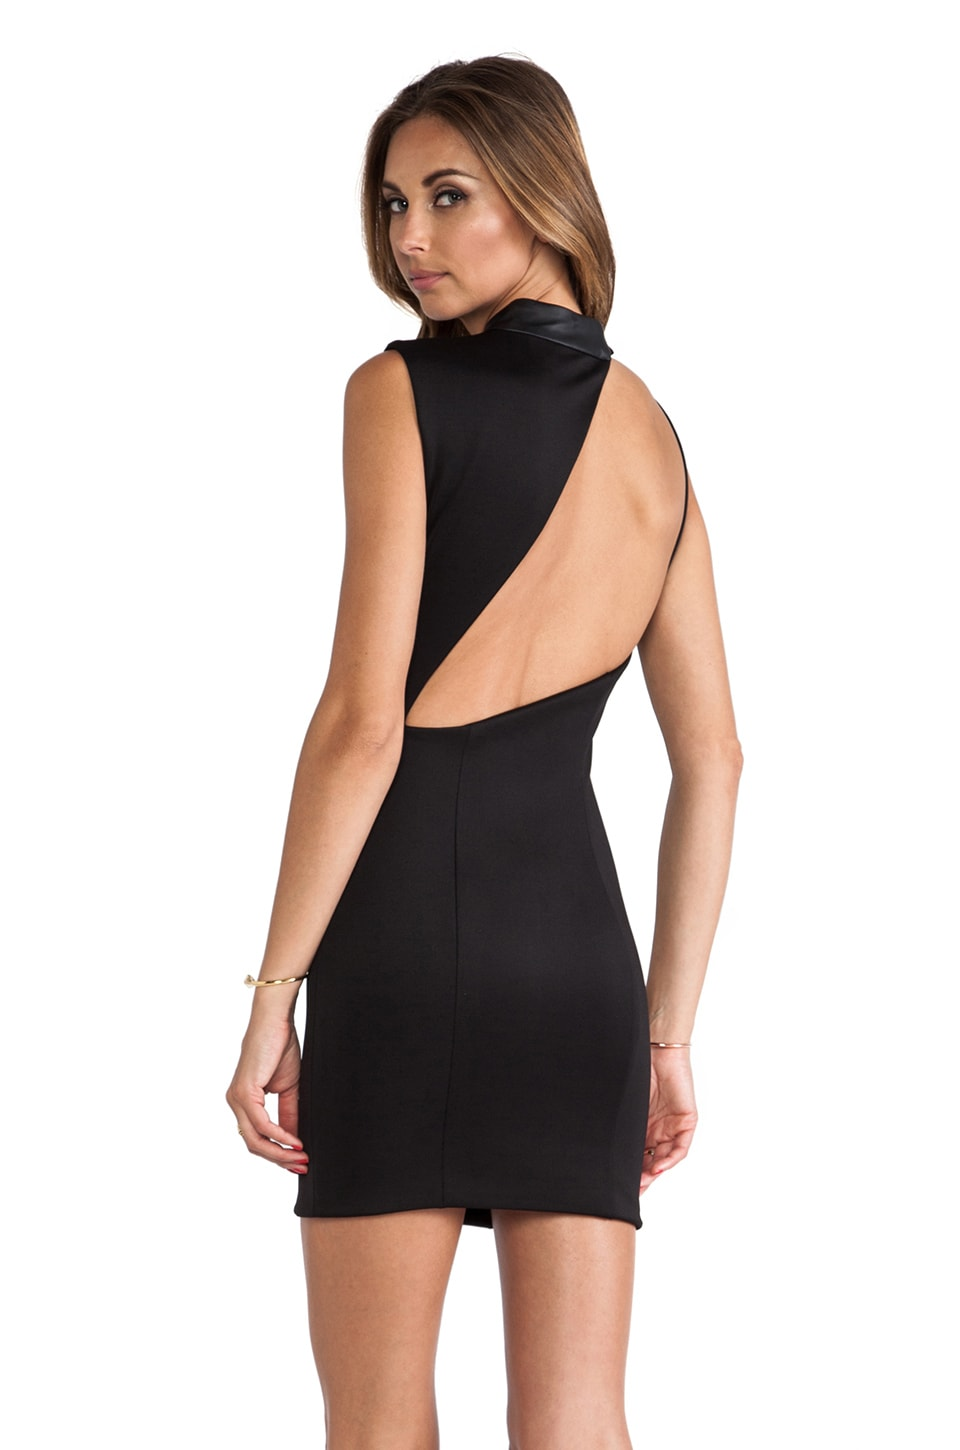 Boulee Lev Dress in Black